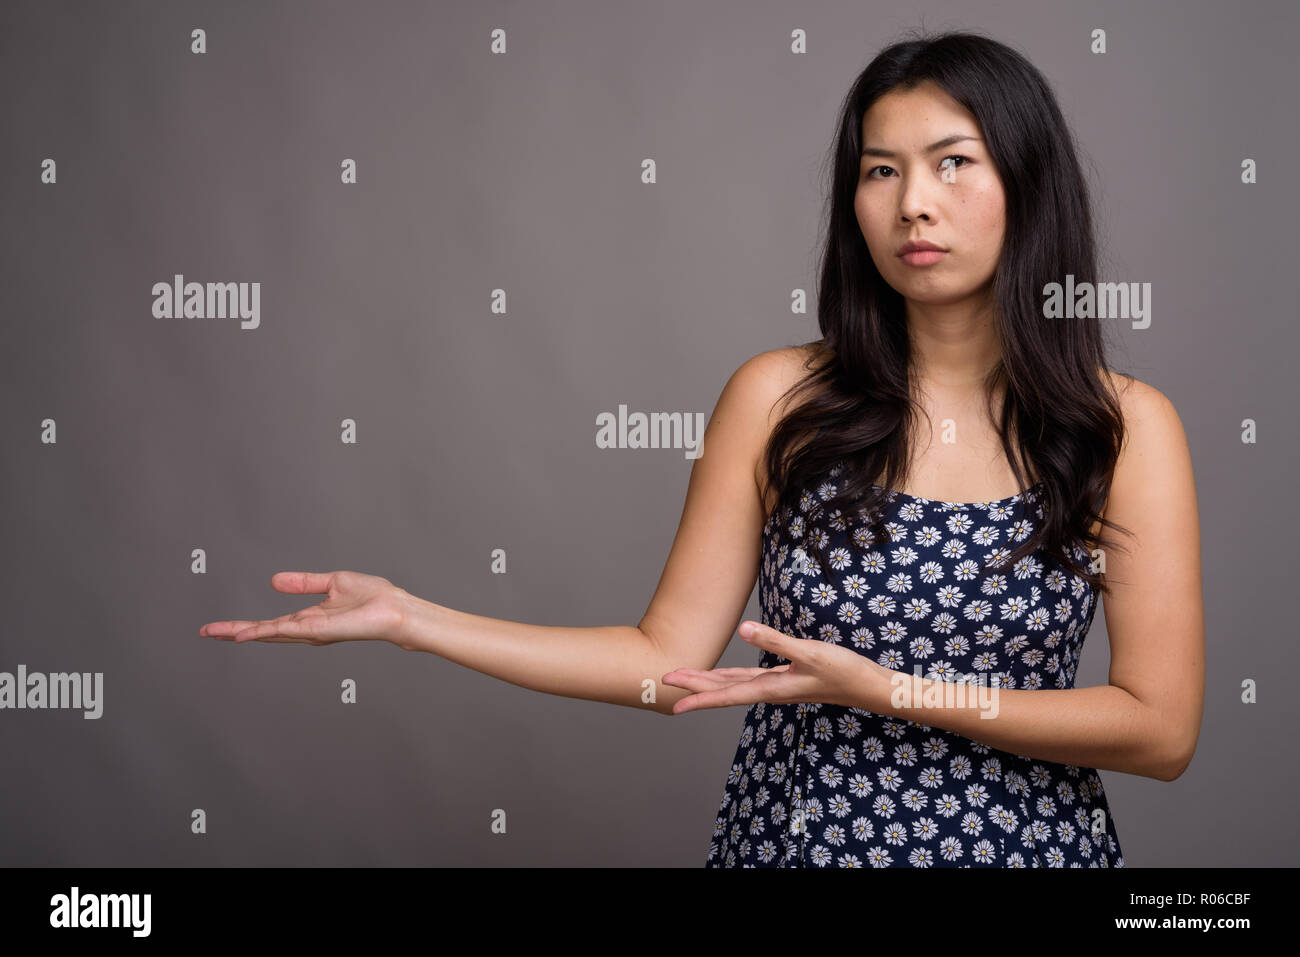 Asian woman wearing blue dress against gray background - Stock Image